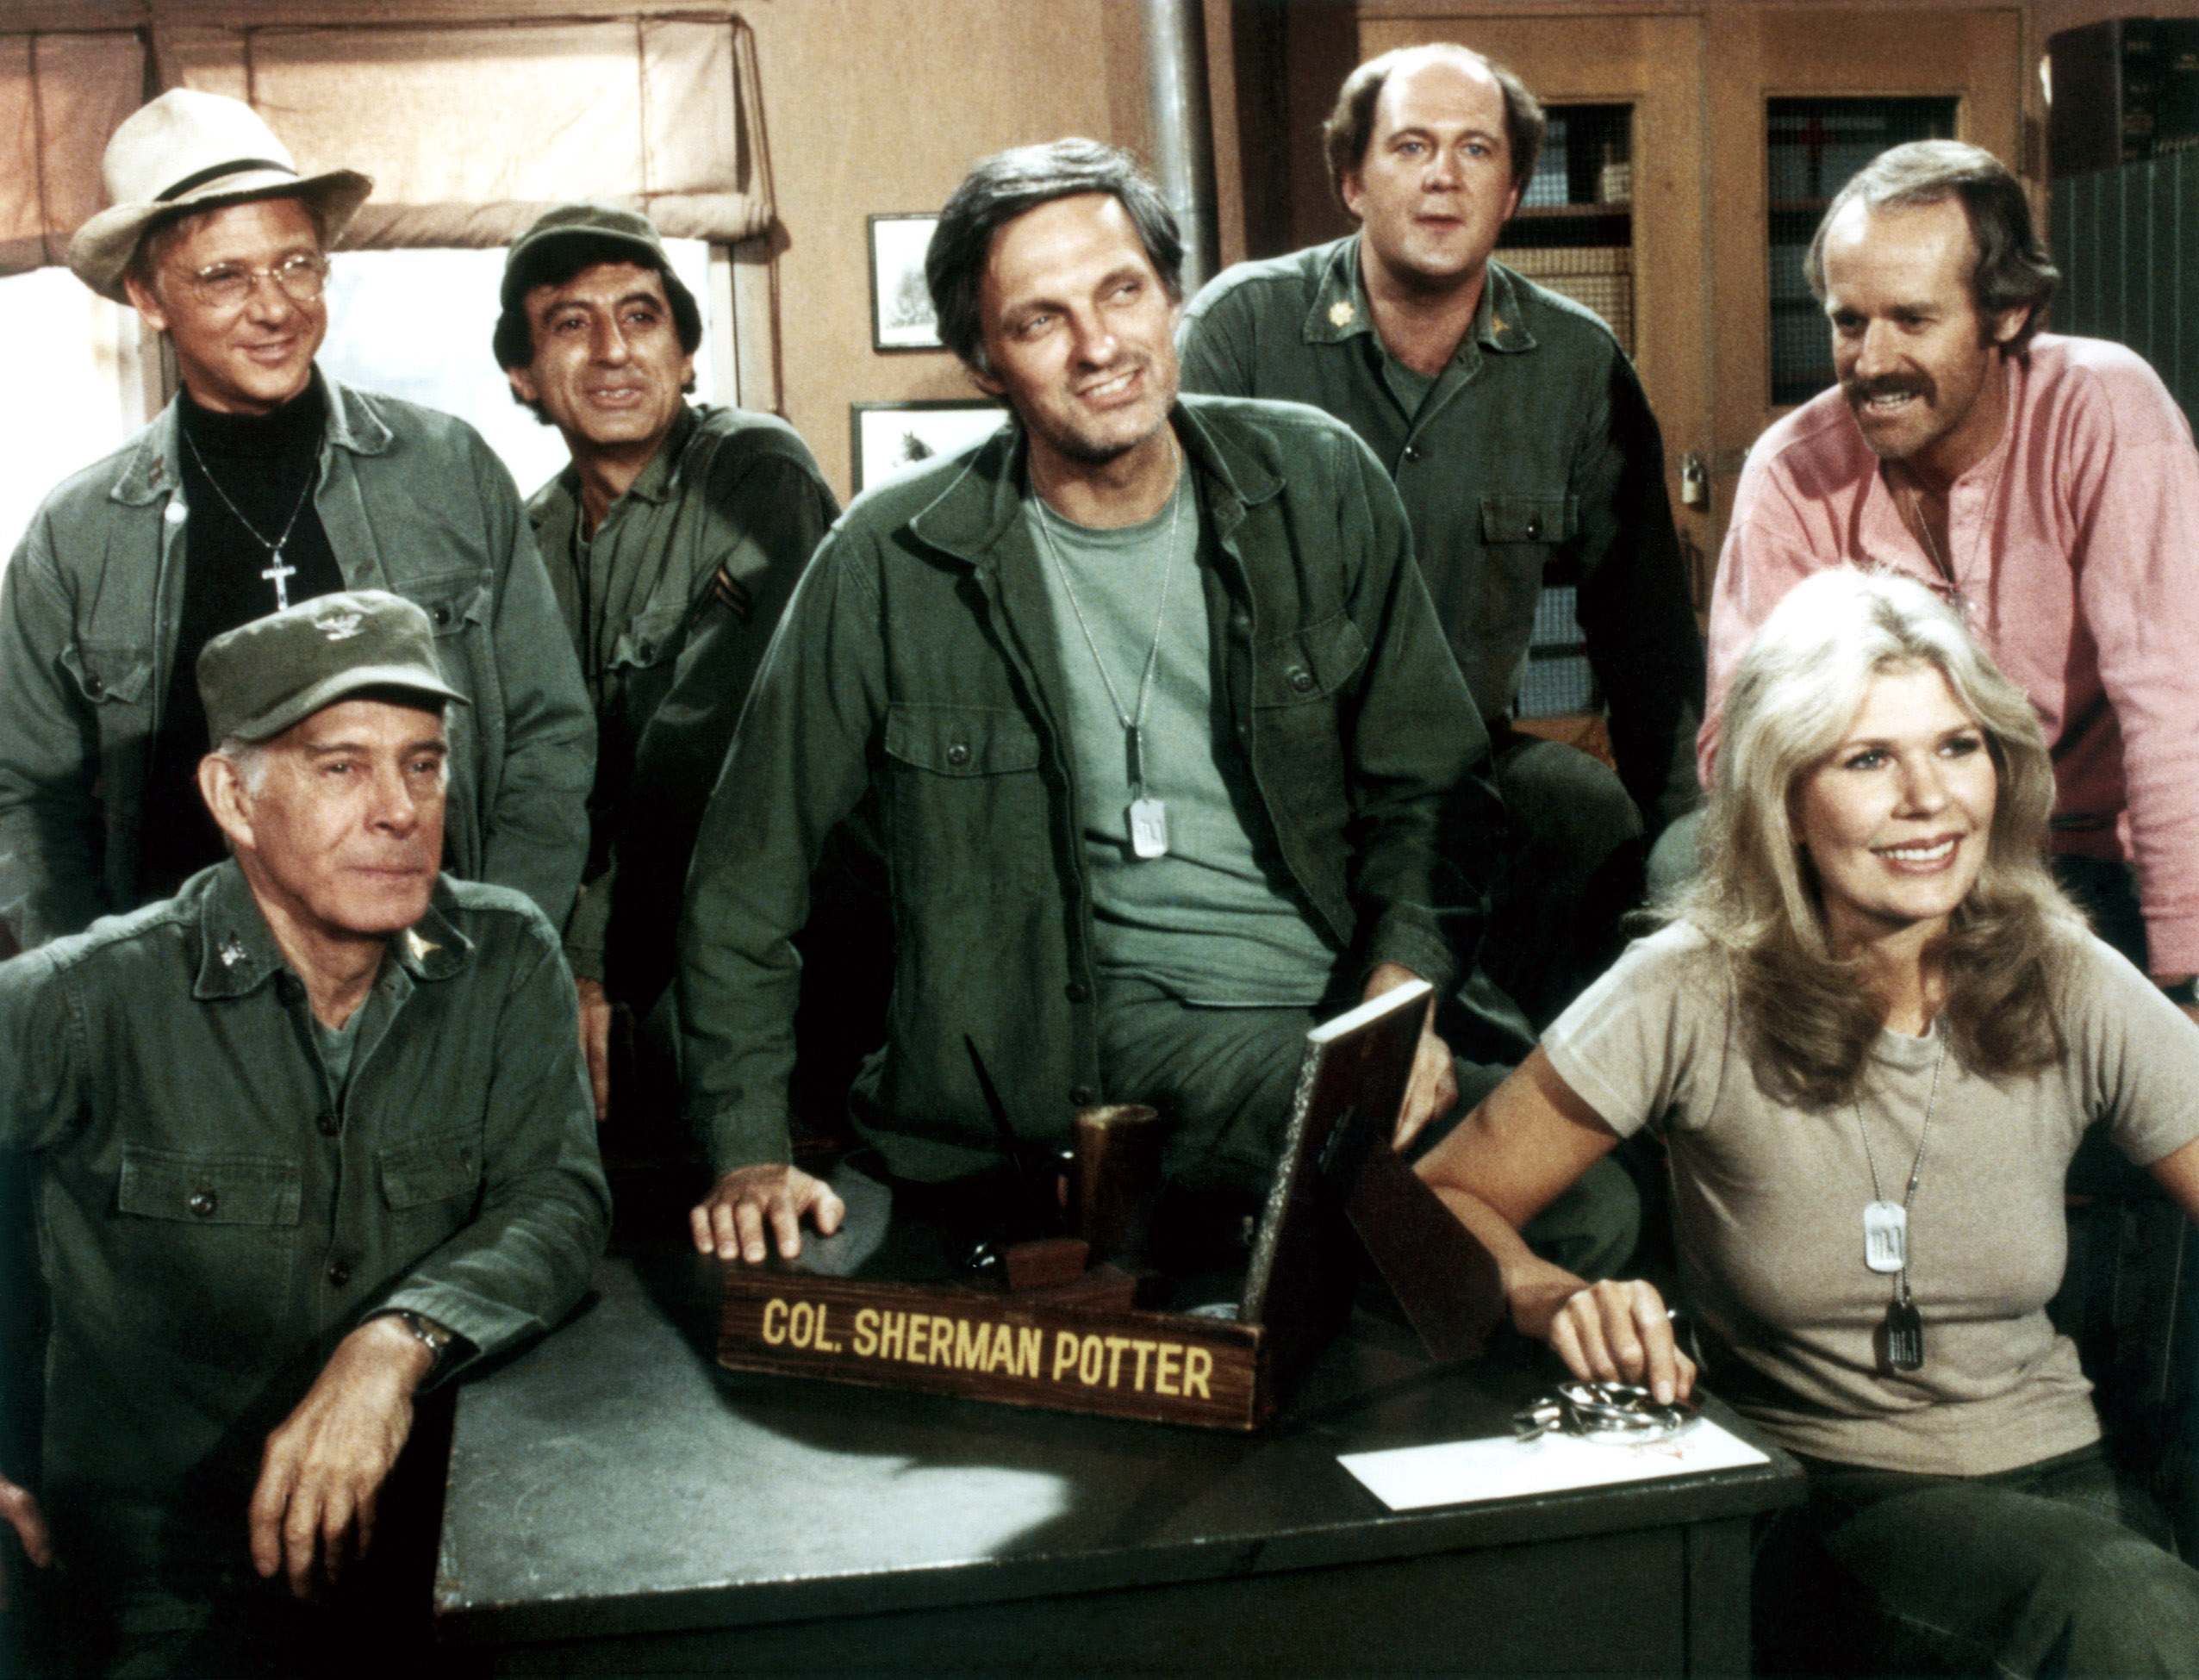 M*A*S*H (aka MASH), from left: Harry Morgan, William Christopher, Jamie Farr, Alan Alda, David Ogden